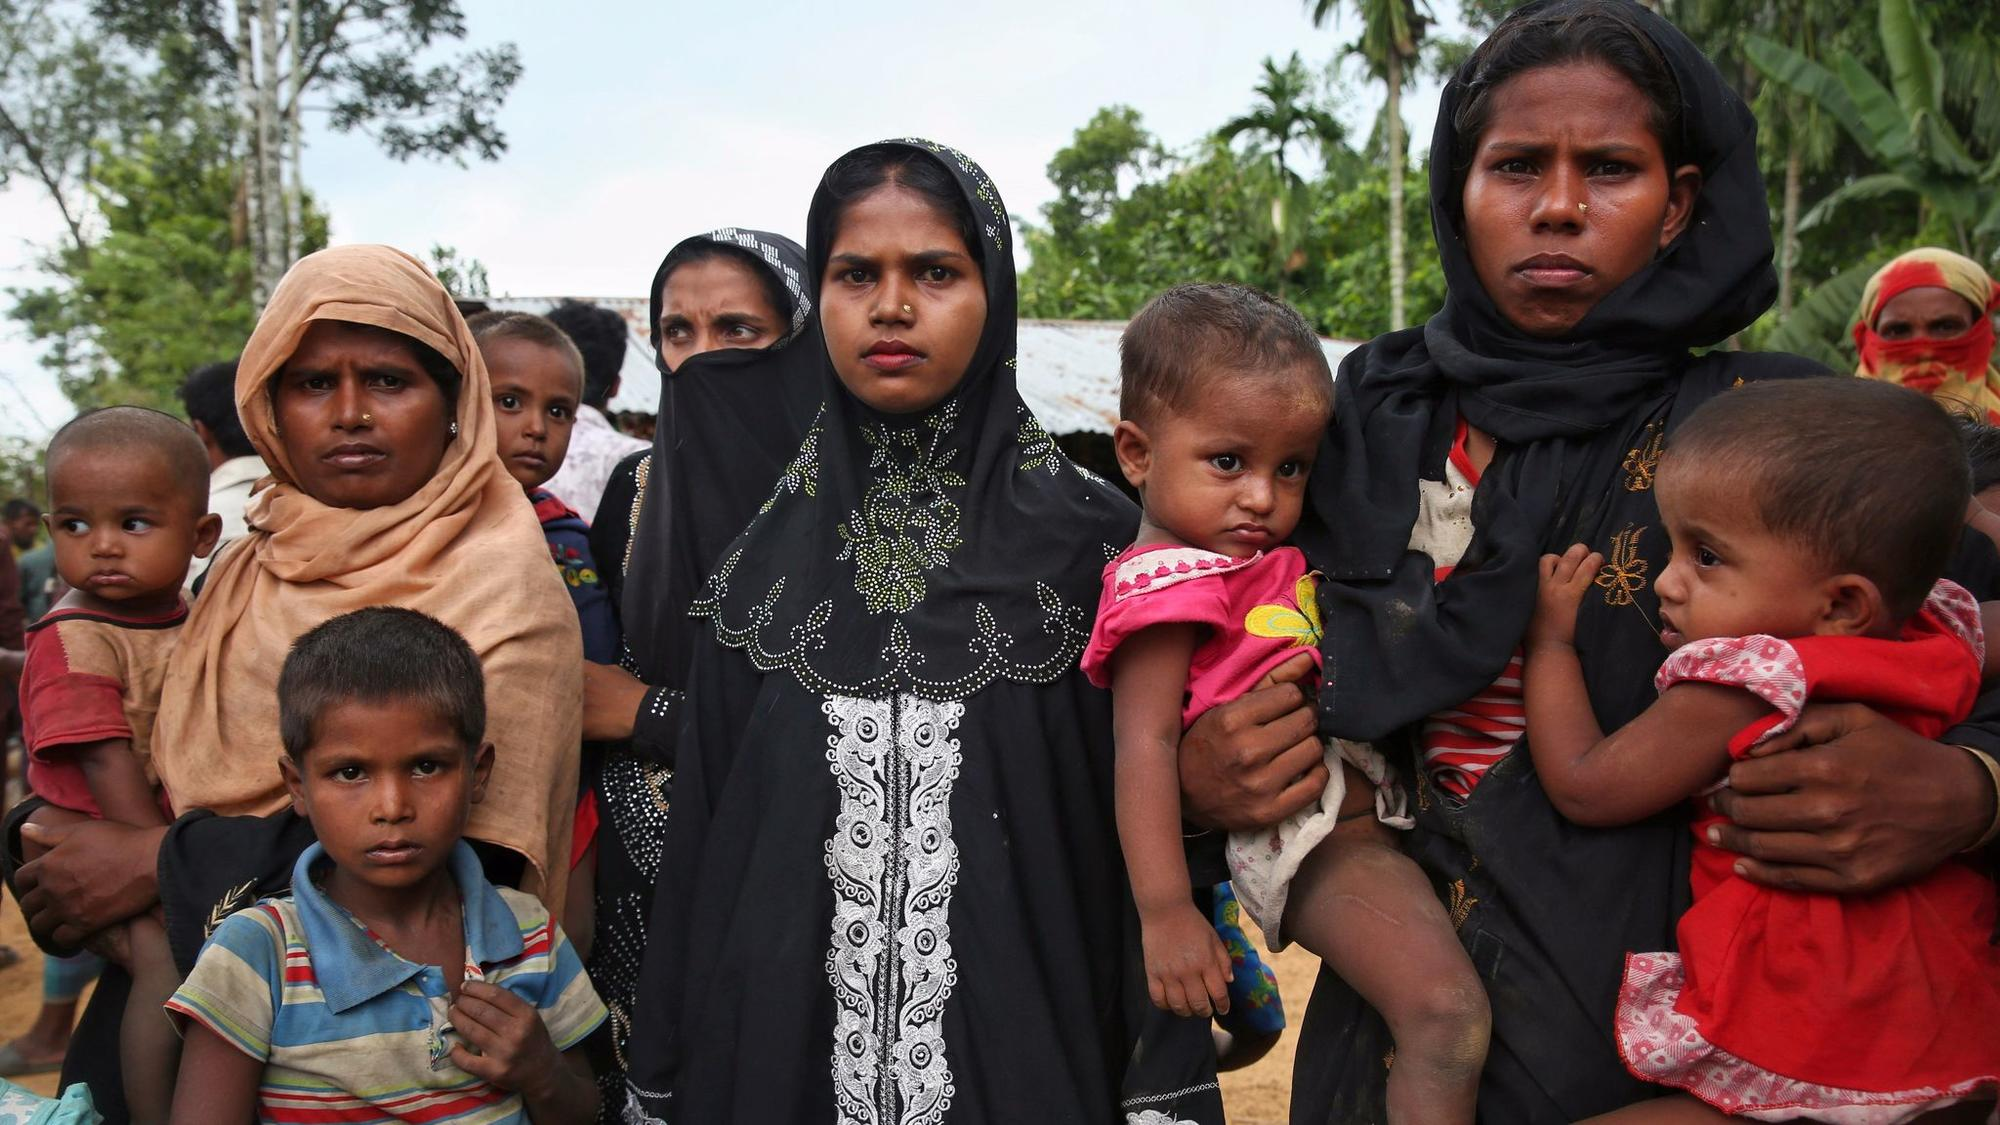 ethnic cleansing' in Myanmar